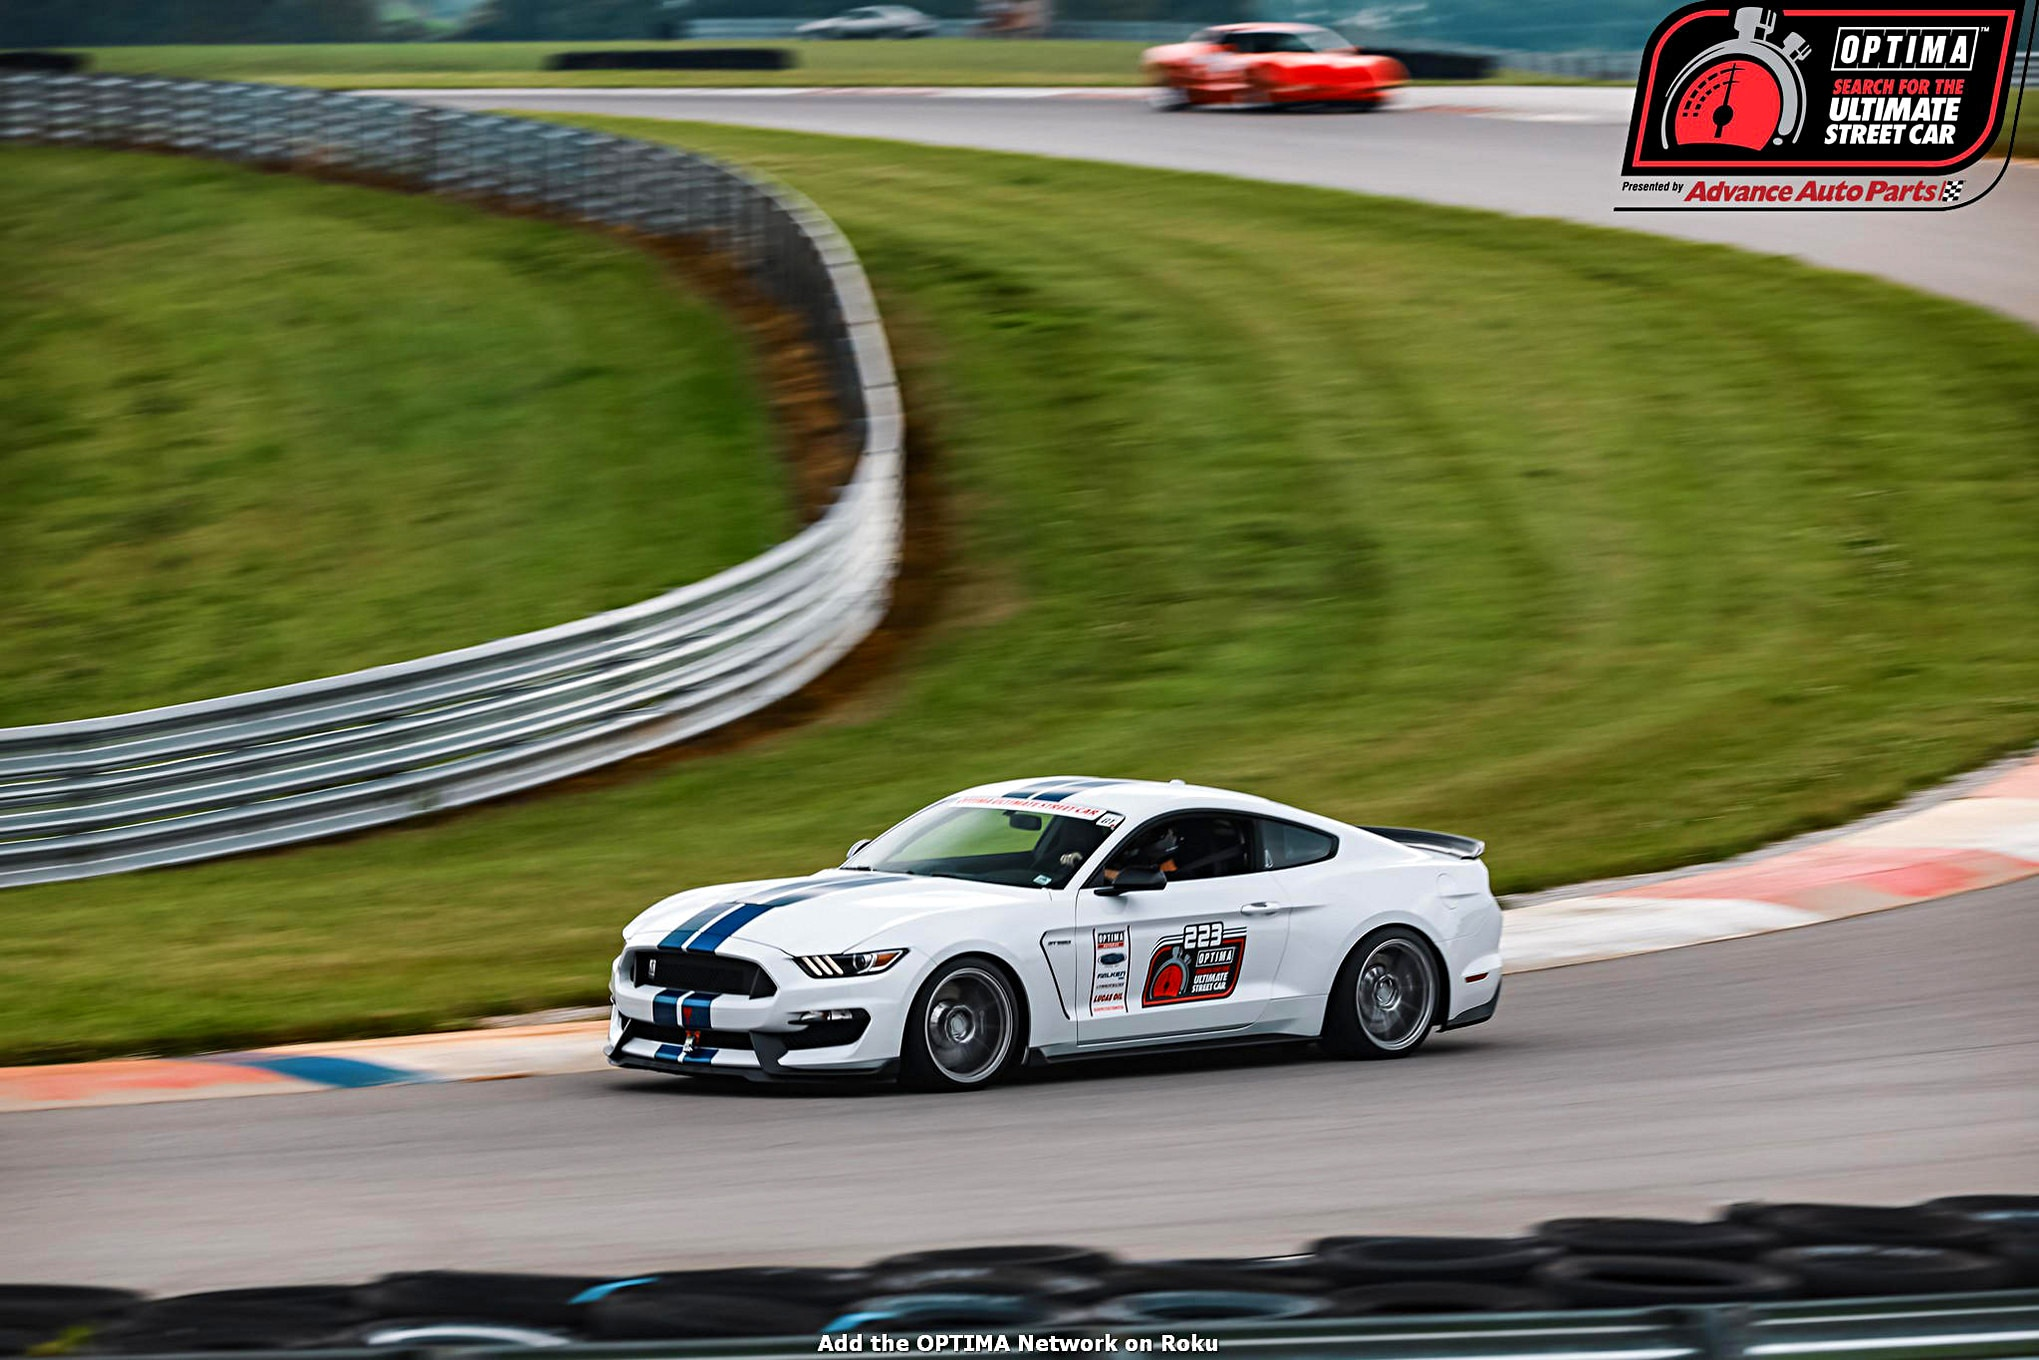 MMFF Charlie Rogers 2017 Ford Shelby GT350 DriveOPTIMA NCM Motorsports Park 2018 612 005